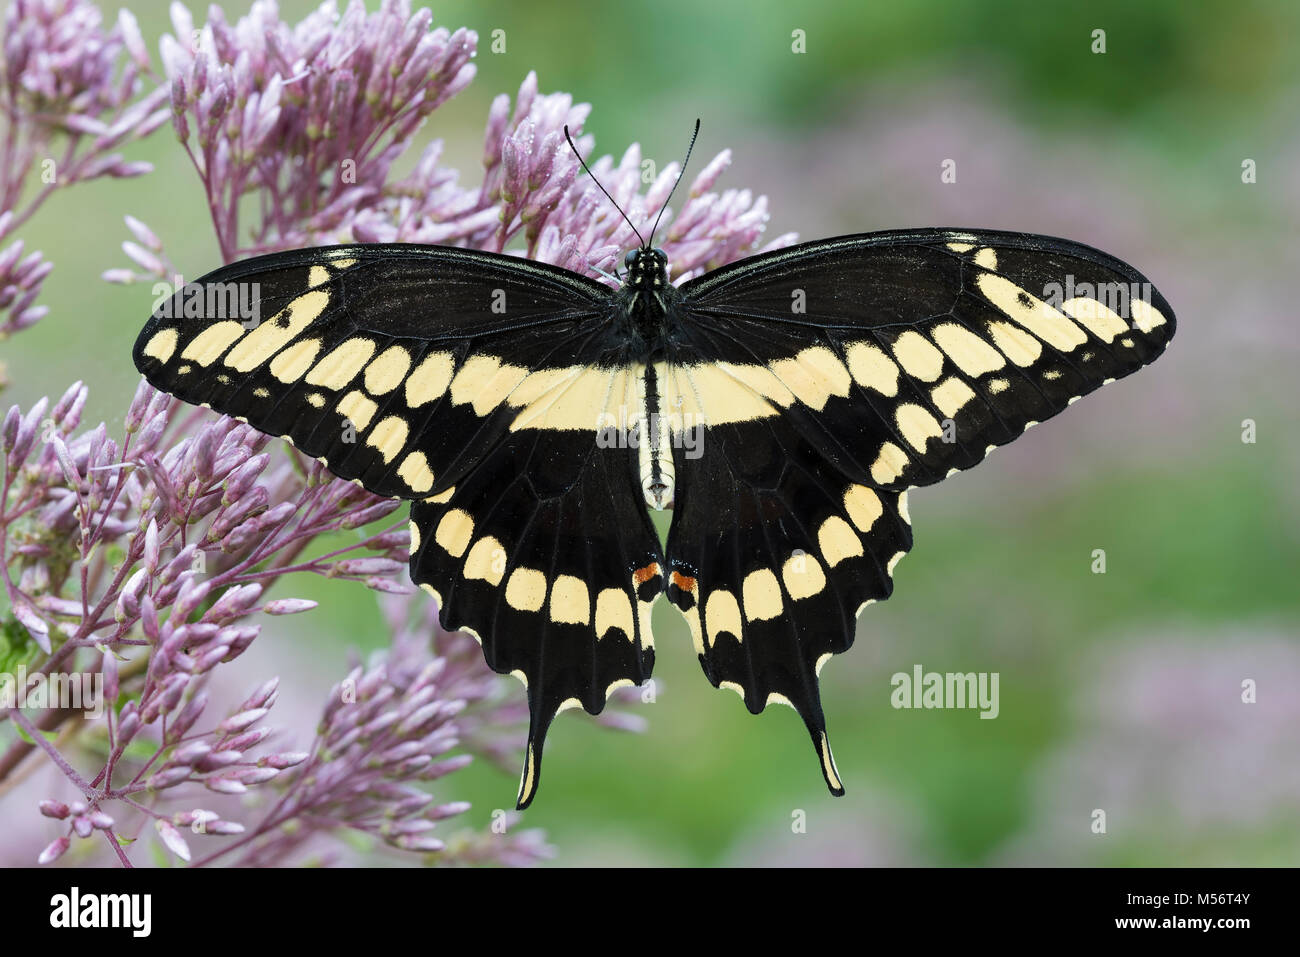 Giant Swallowtail (Papilio cresphontes) nectaring on Spotted Joe-Pye Weed. Gifford Pinchot State Park, Pennsylvania, - Stock Image